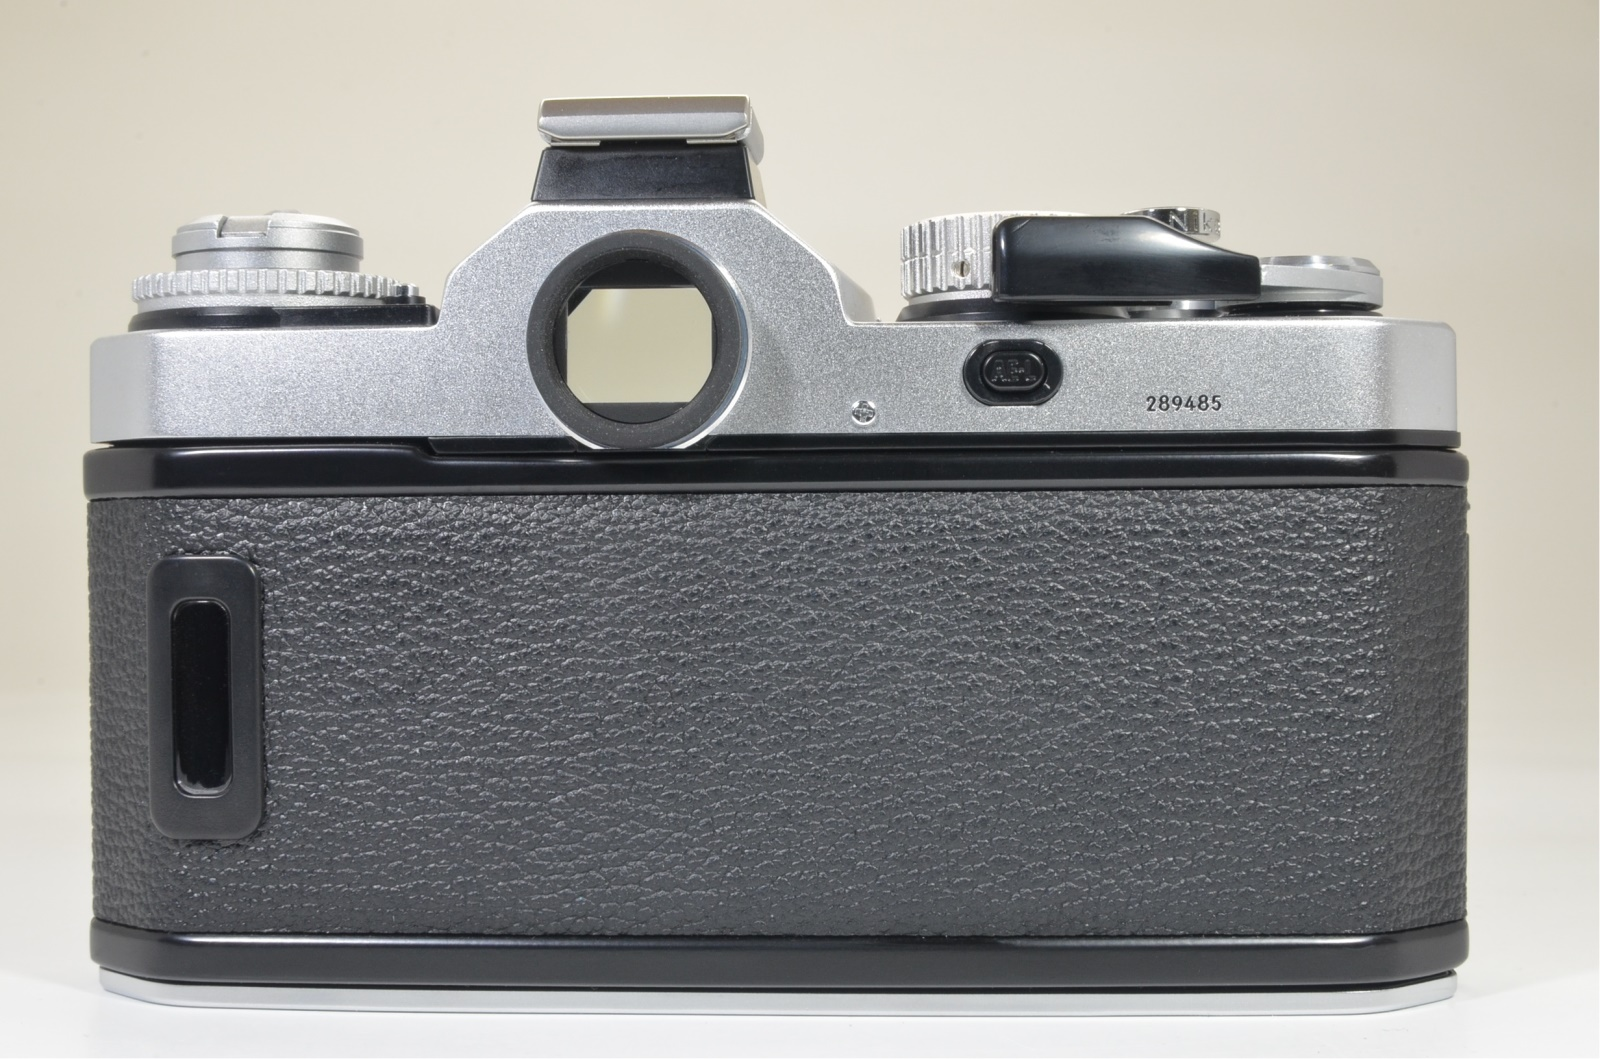 nikon fm3a silver 35mm film camera with nikkor 45mm f/2.8p film tested